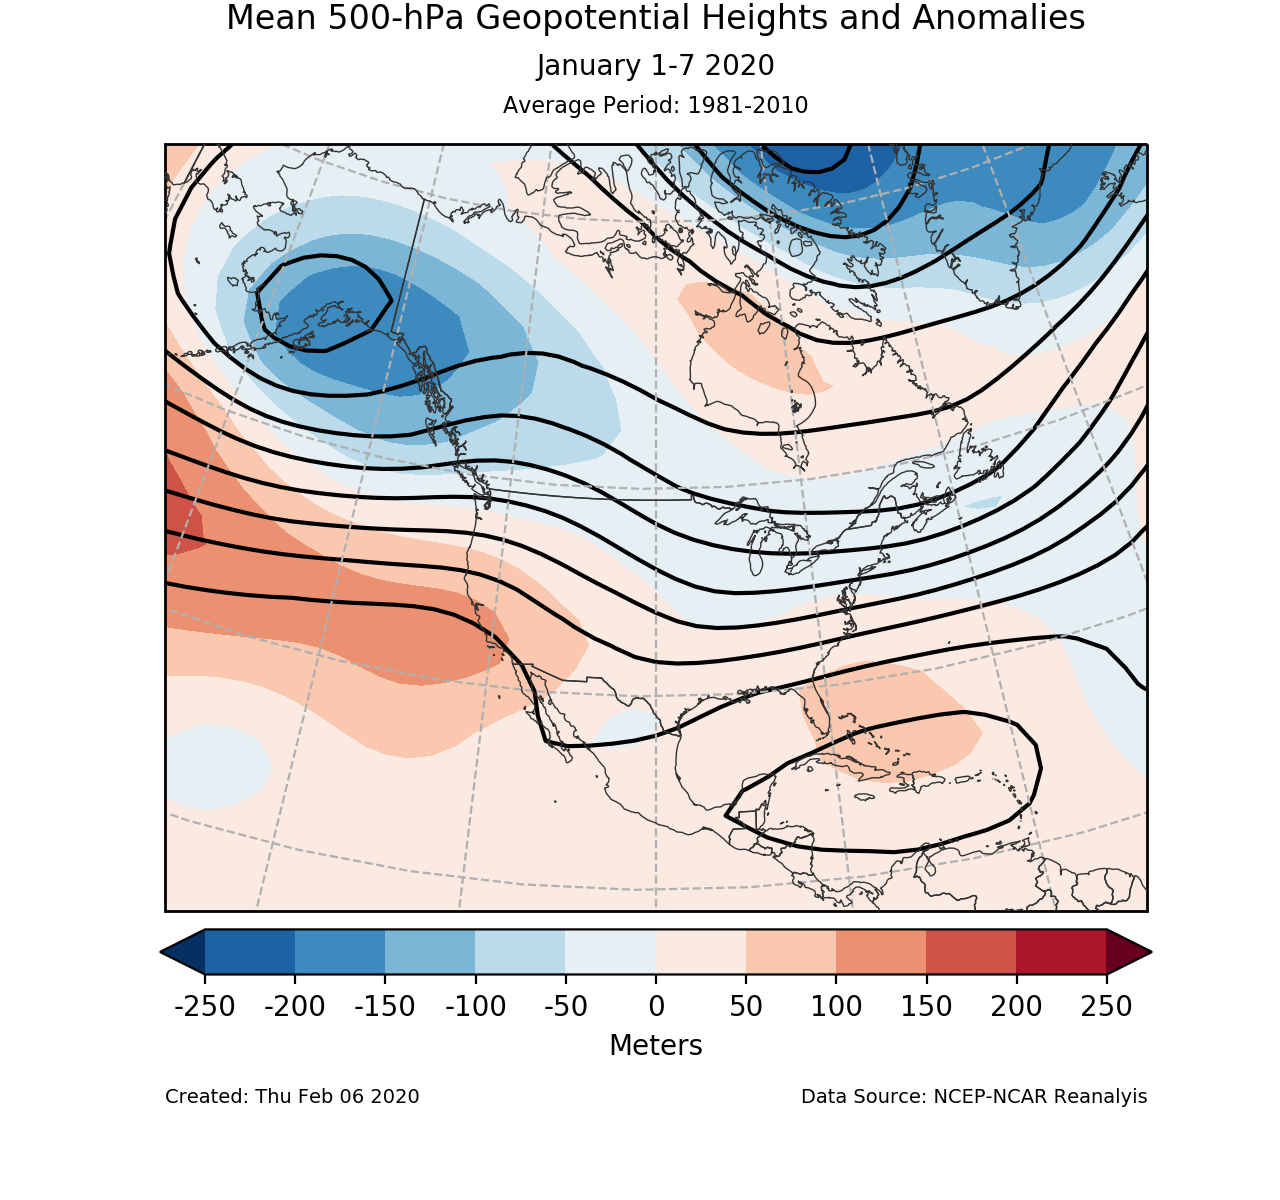 500-mb circulation anomalies for North America for January 1-7 2020